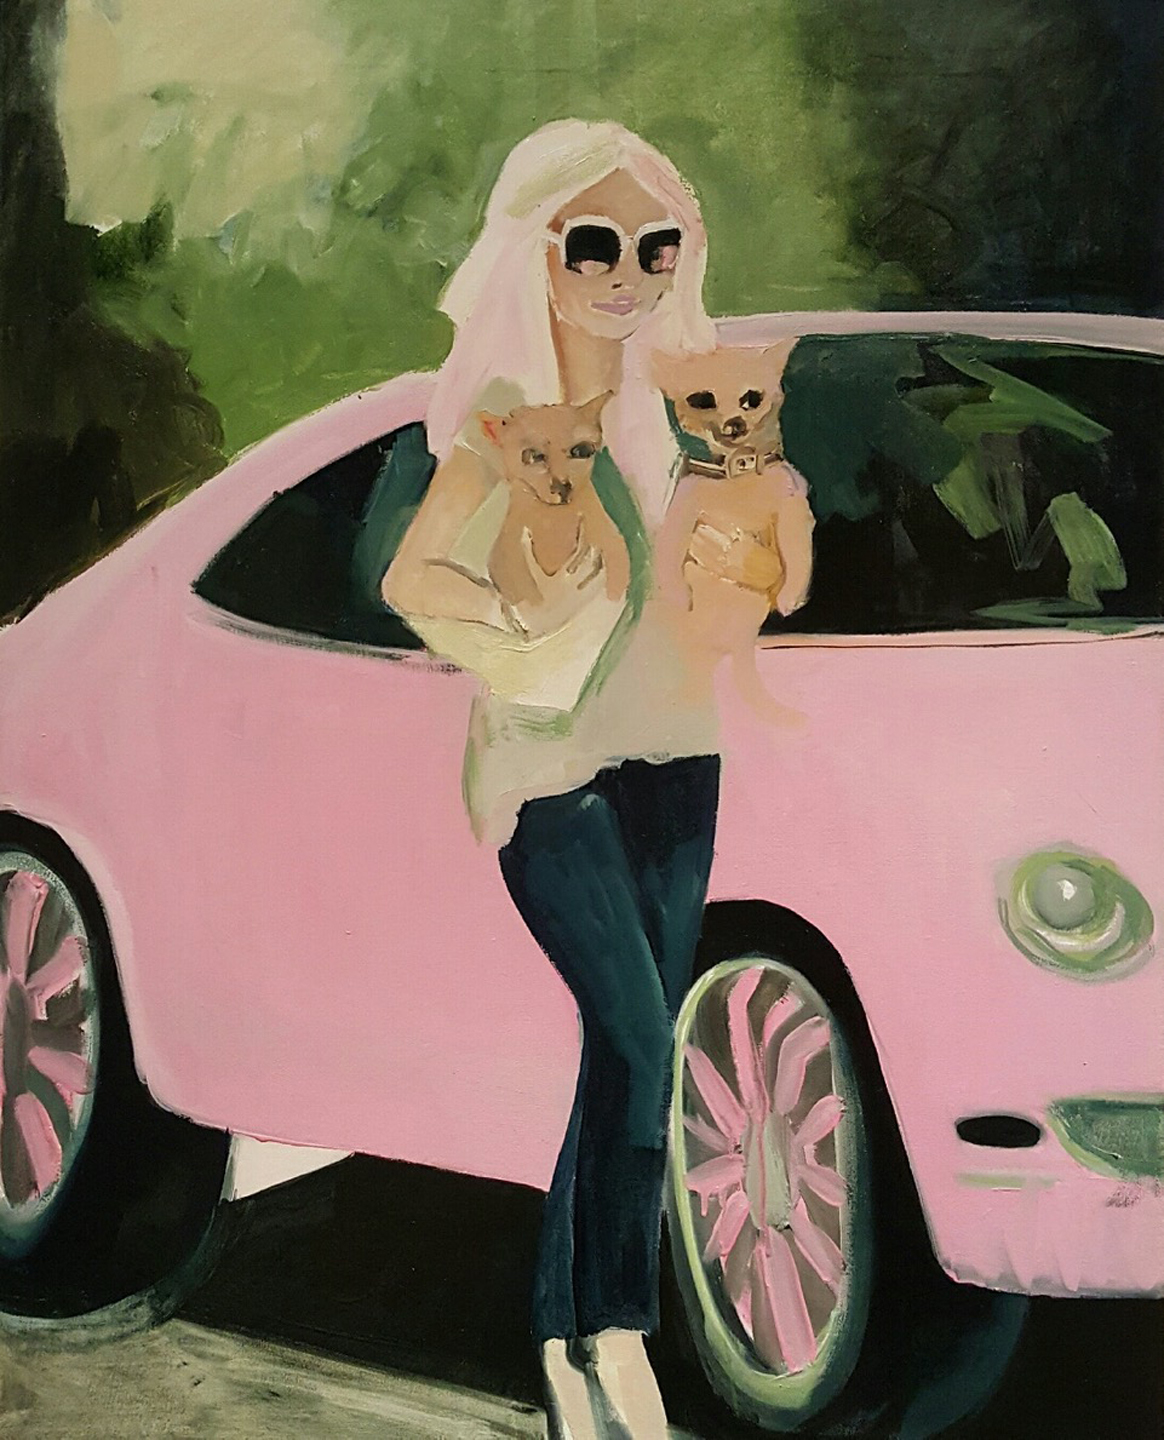 Paris and her Pooches and Pink Car